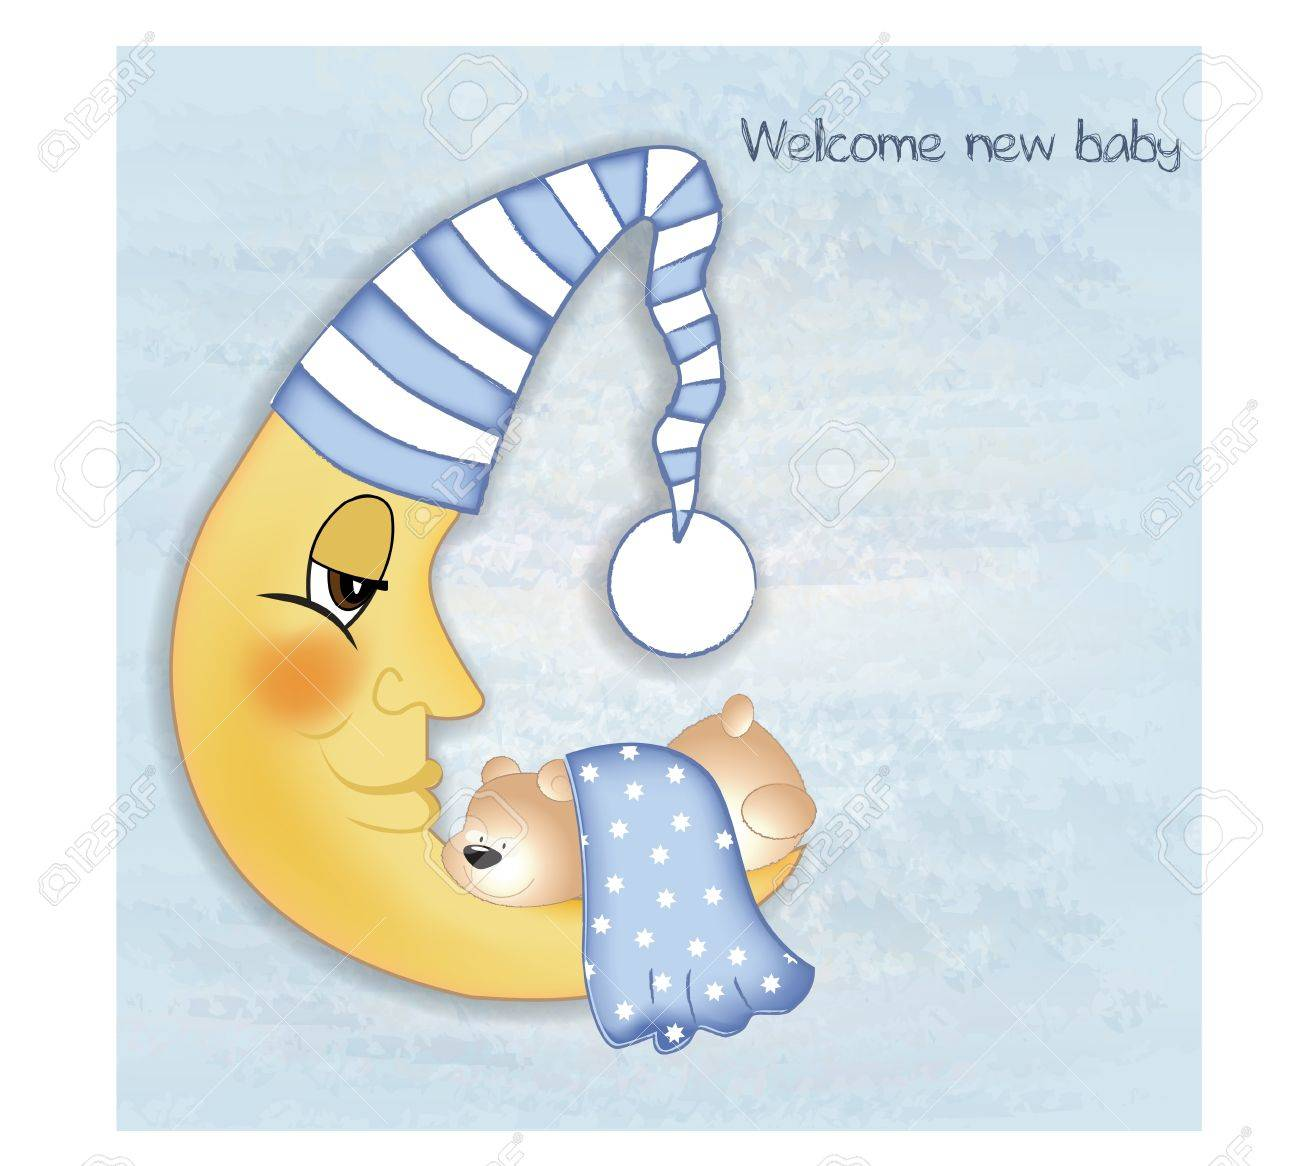 welcome baby greetings card Stock Vector - 9806721